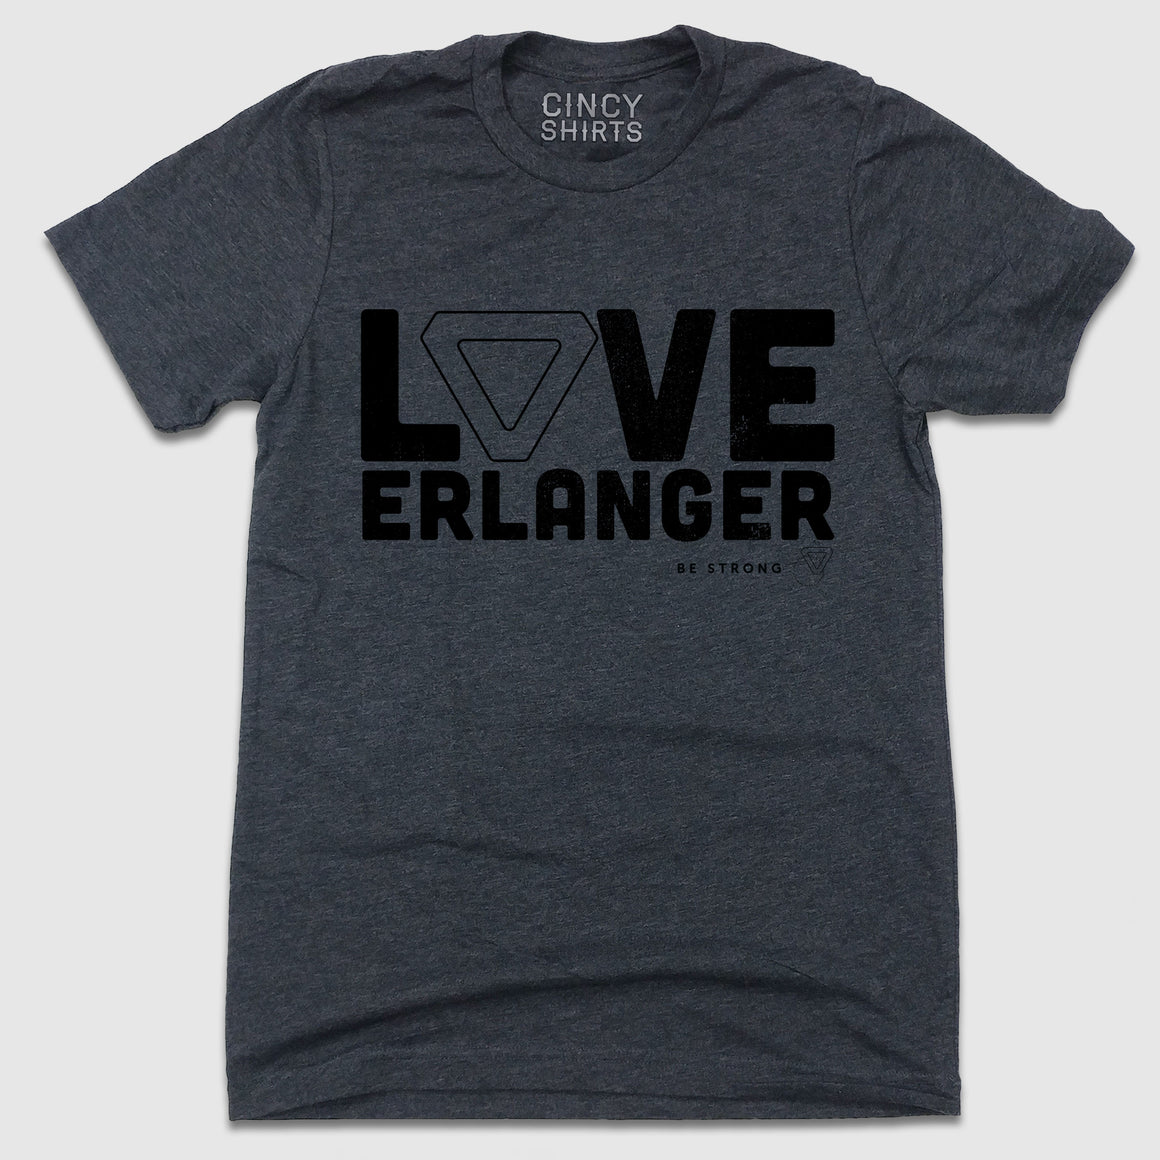 Love Erlanger - Be Strong - Cincy Shirts